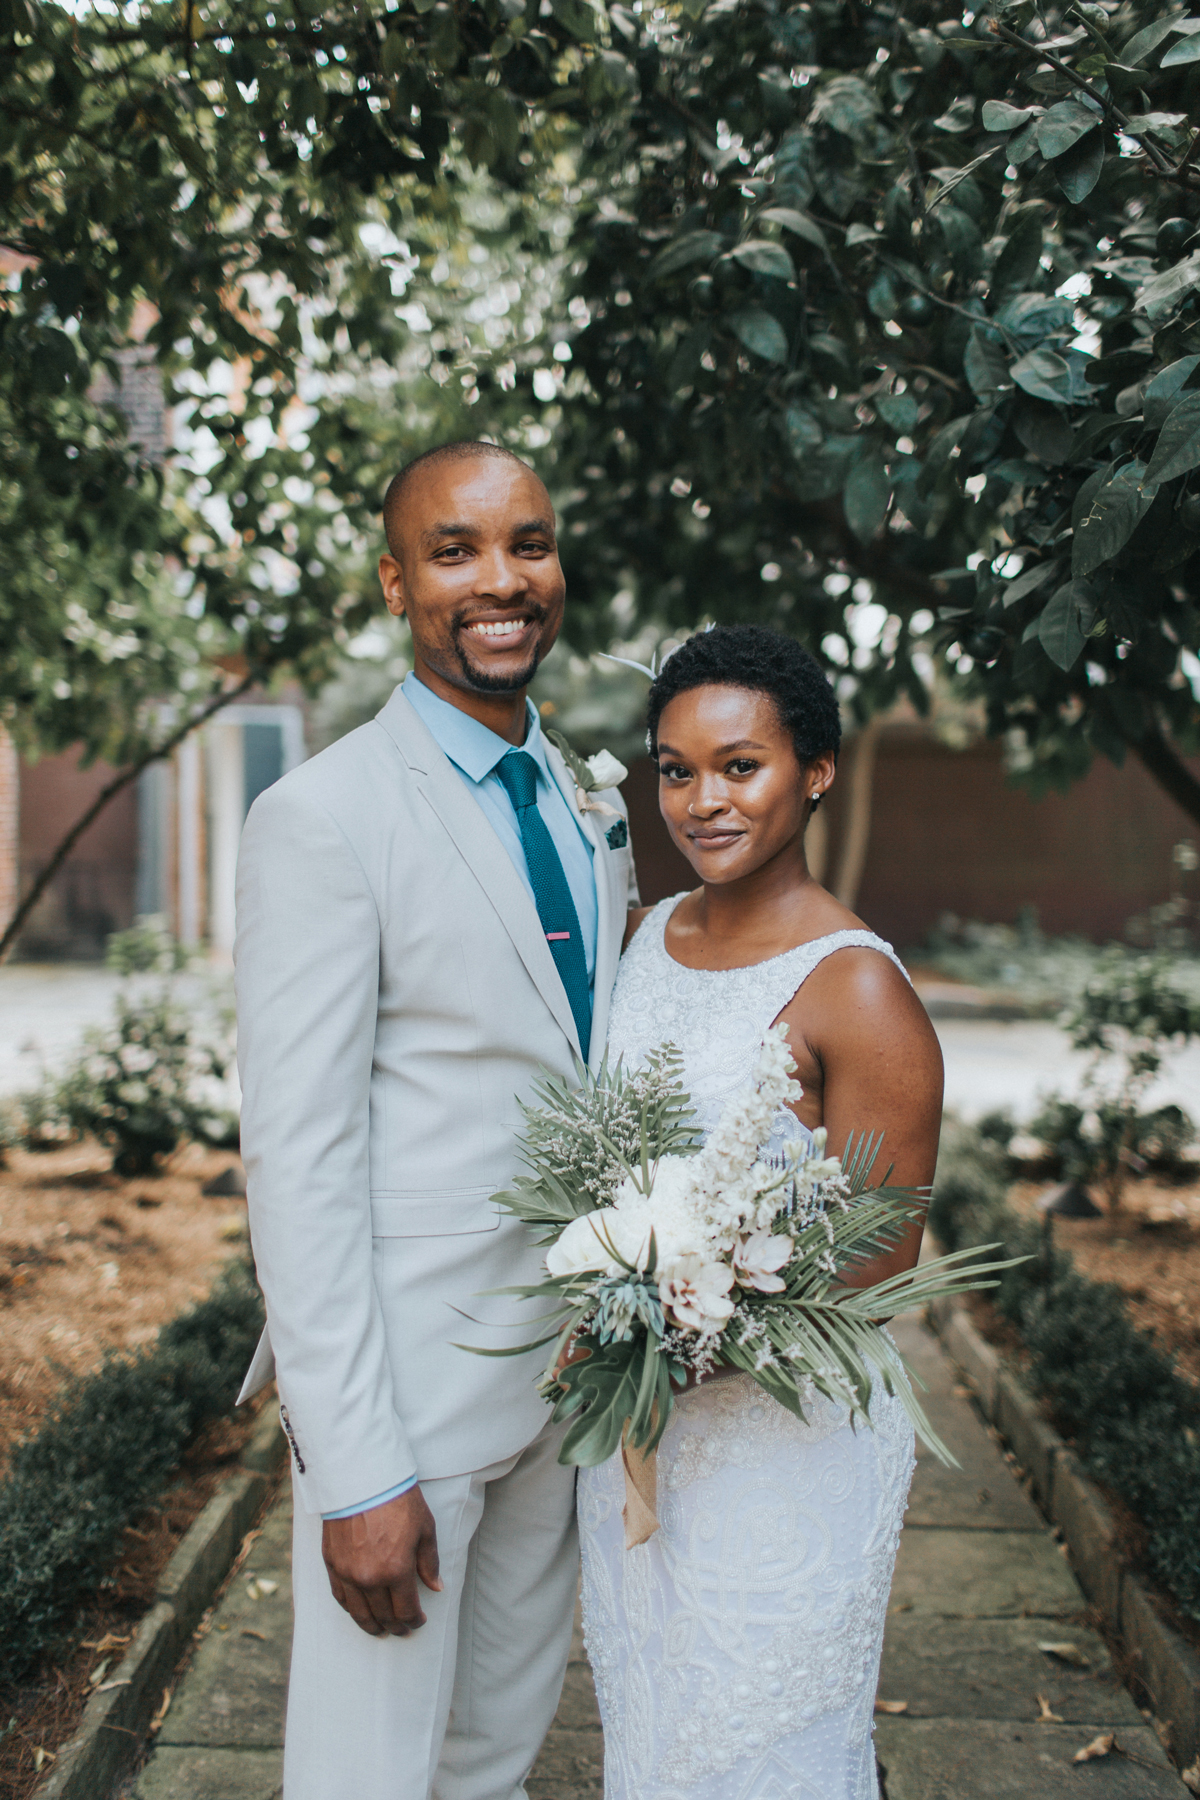 An Intimate New Orleans Wedding on a Hot Summer Day